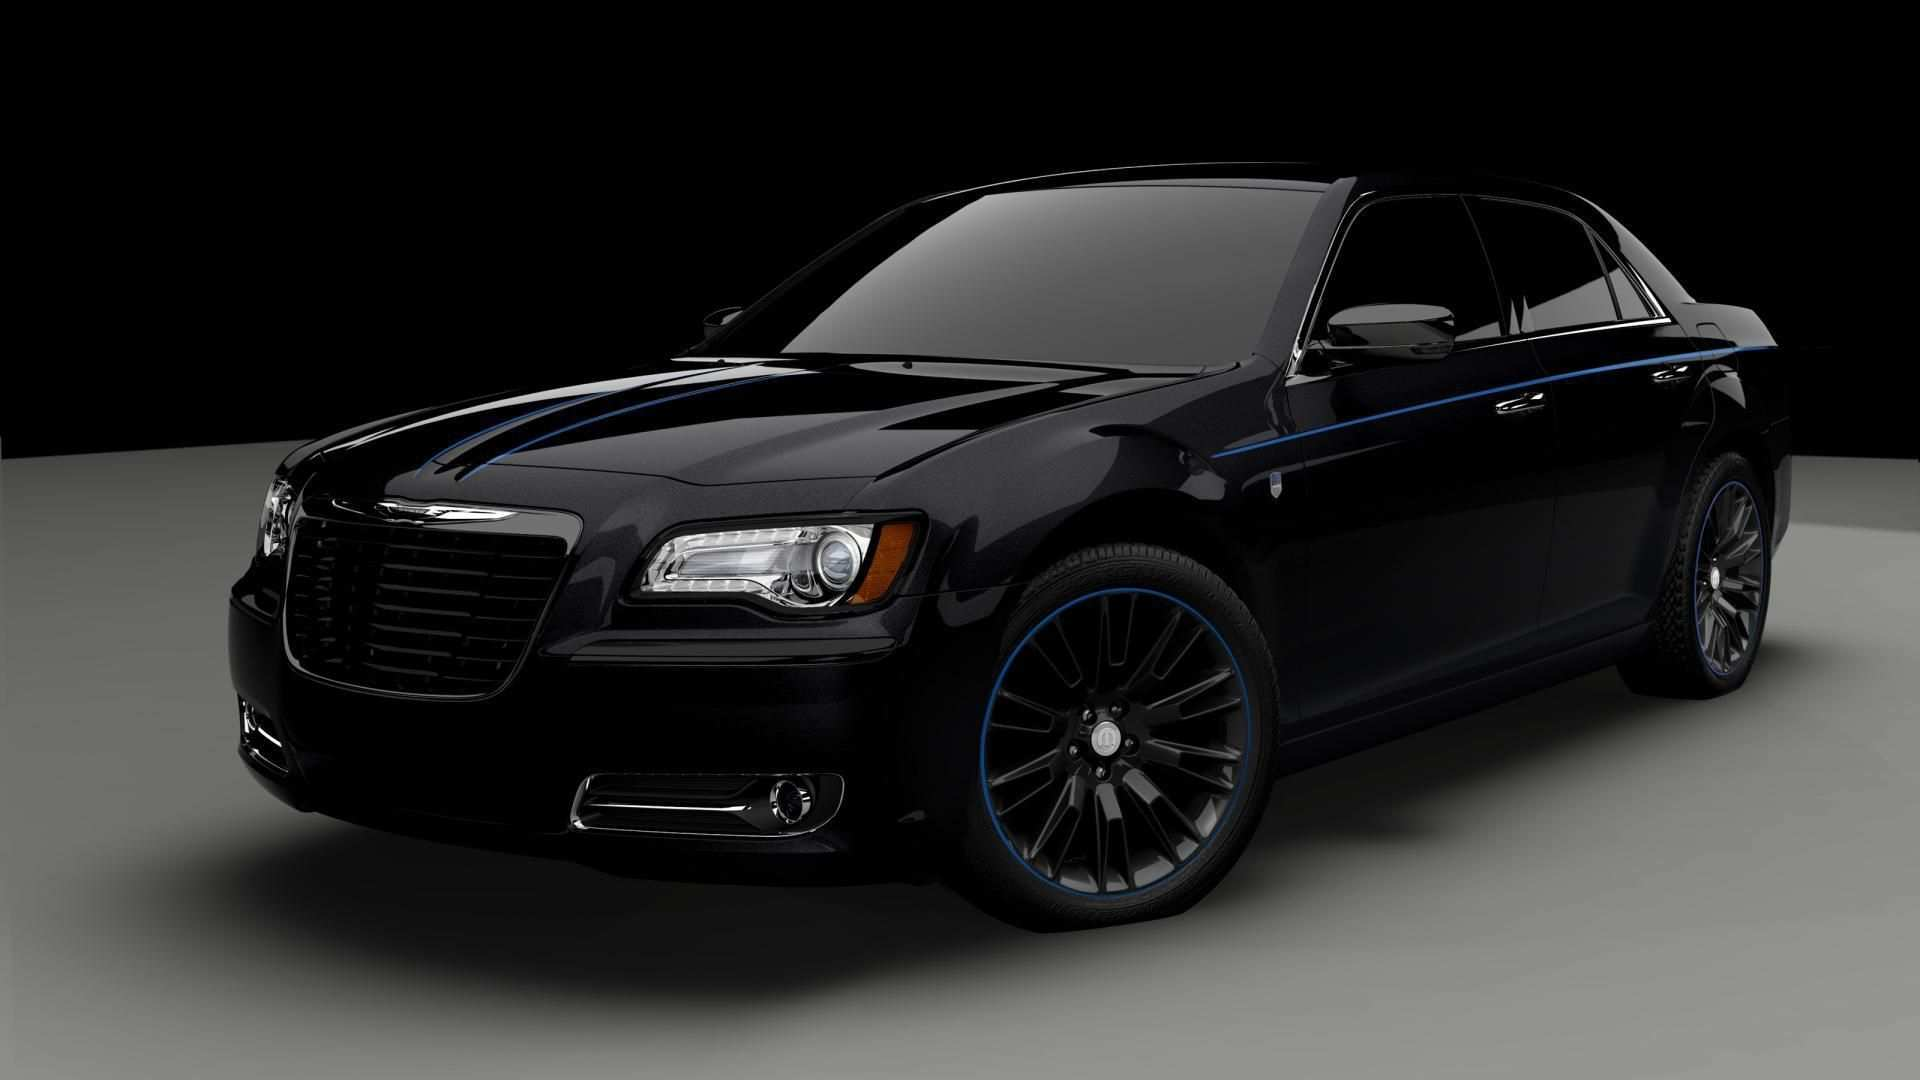 12 New 2020 Chrysler 300 Srt 8 Exterior and Interior with 2020 Chrysler 300 Srt 8